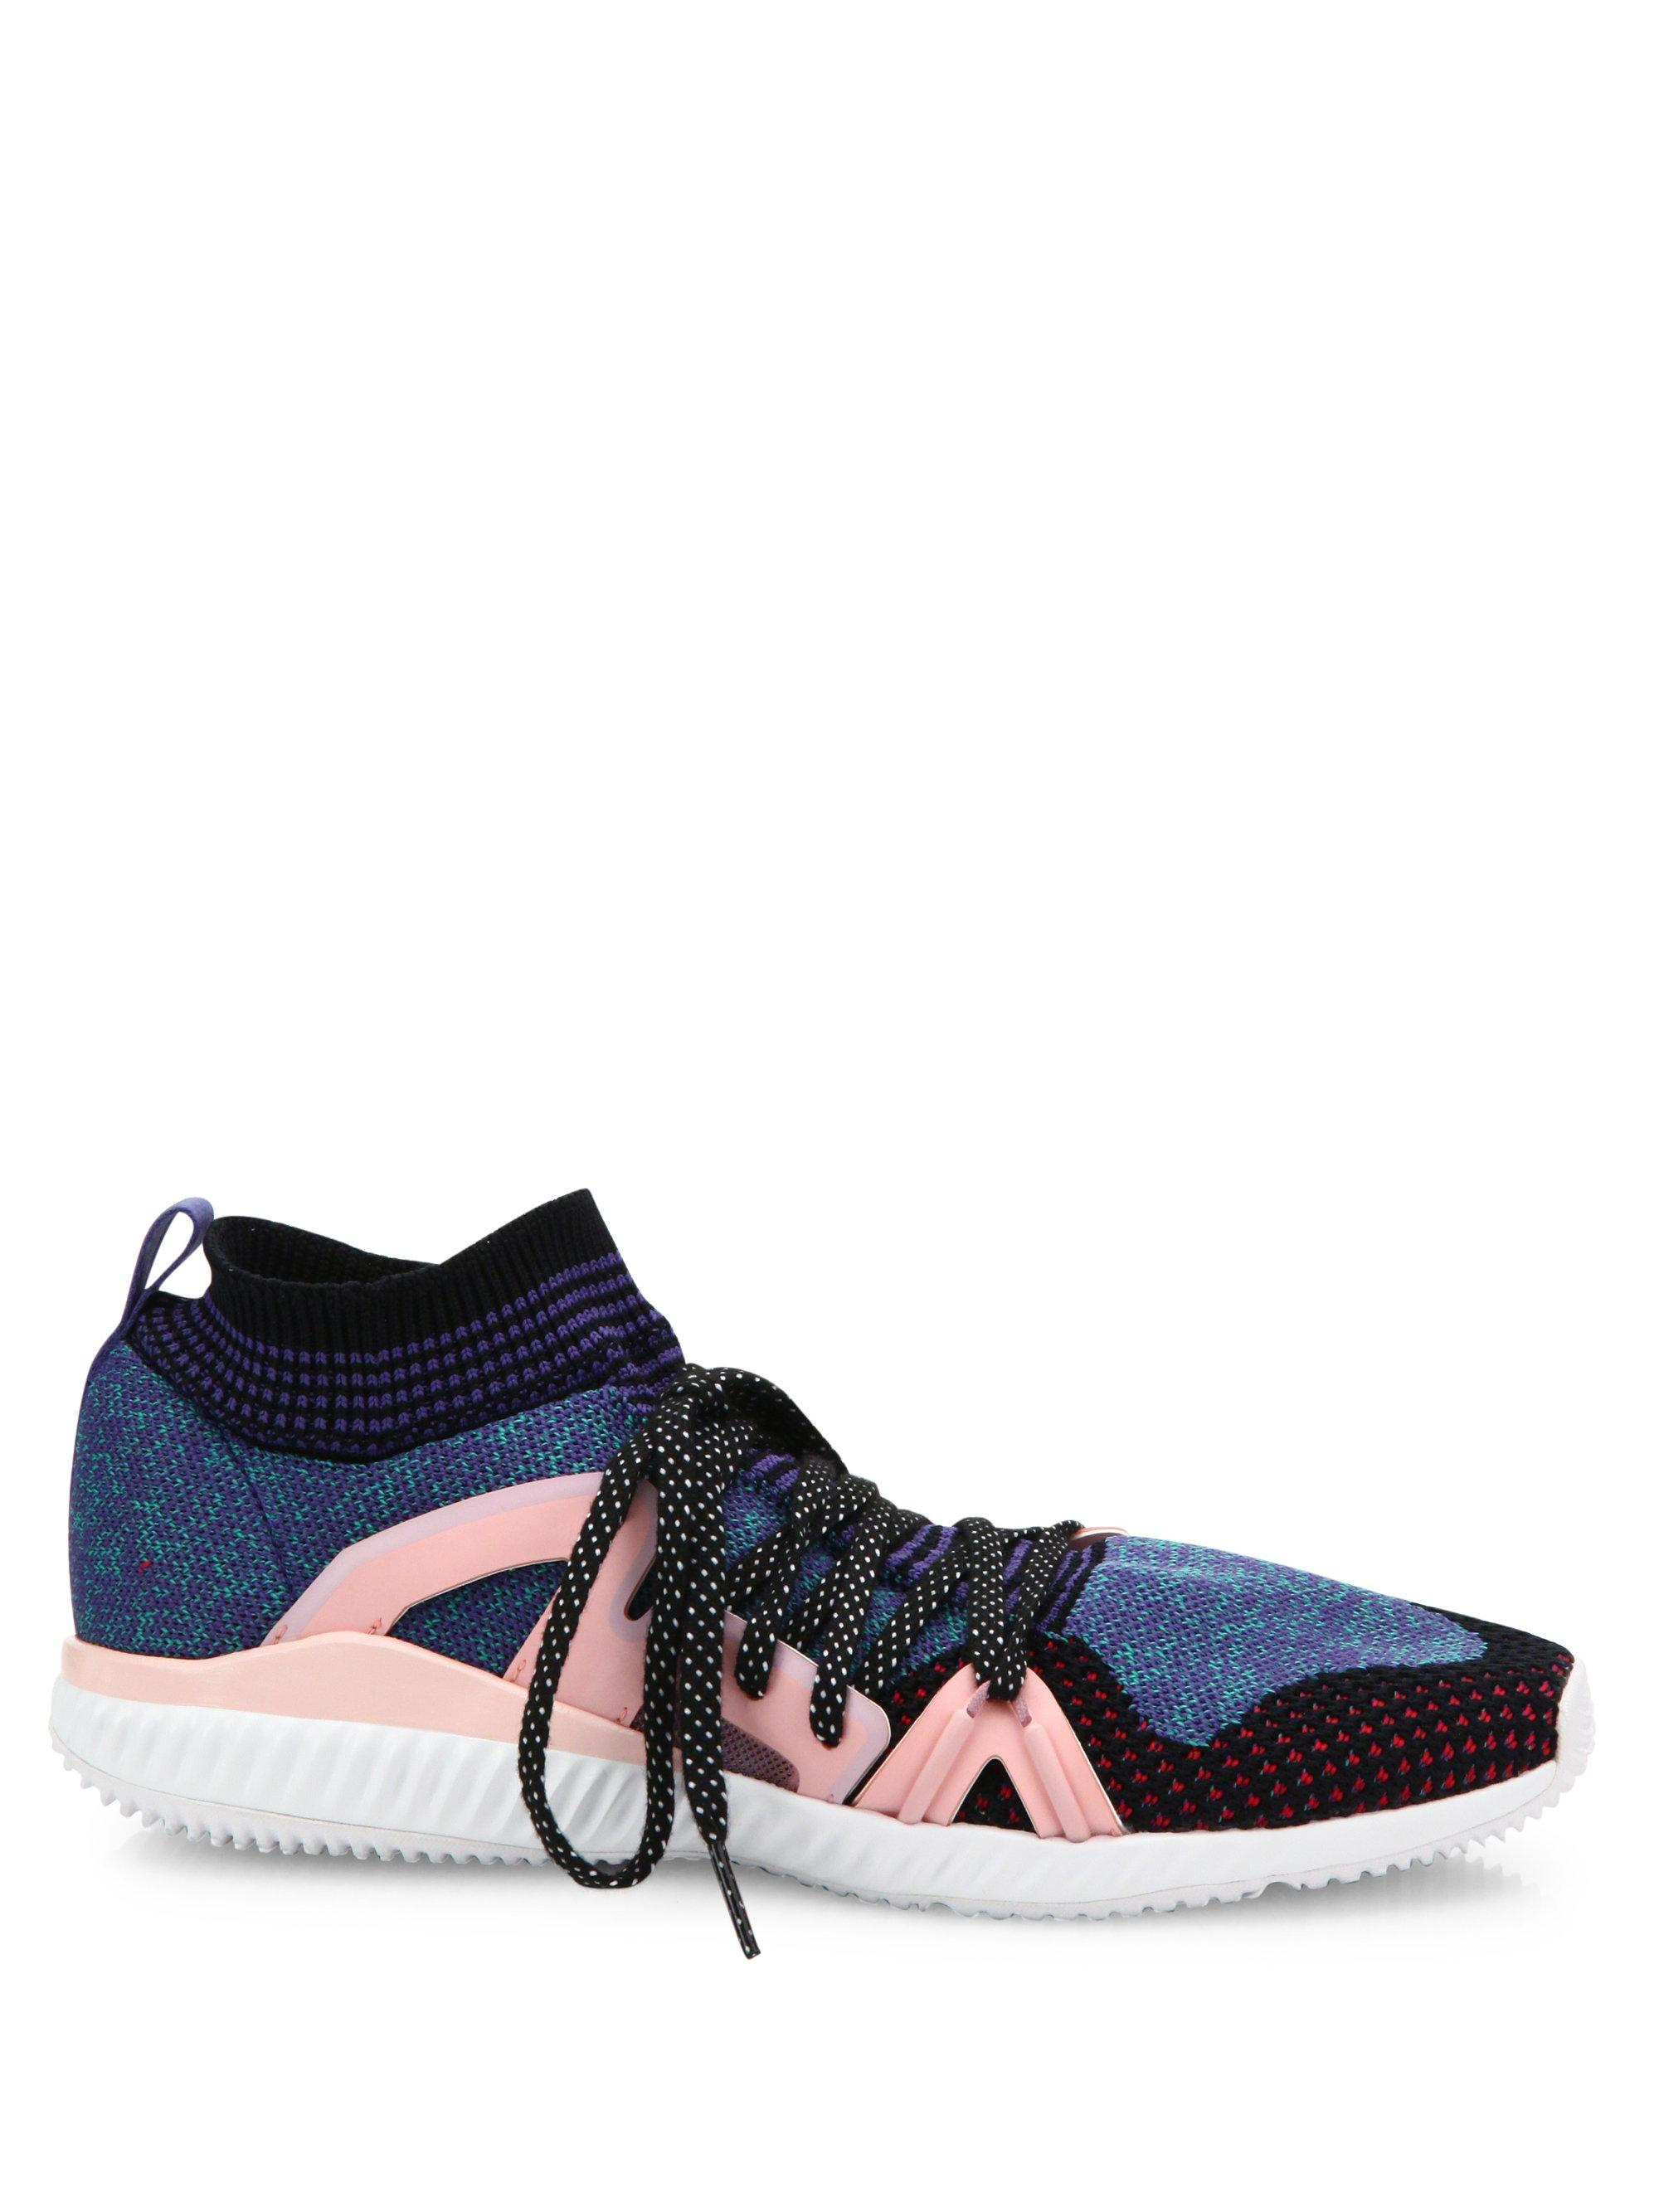 Women S Crazymove Bounce Shoes